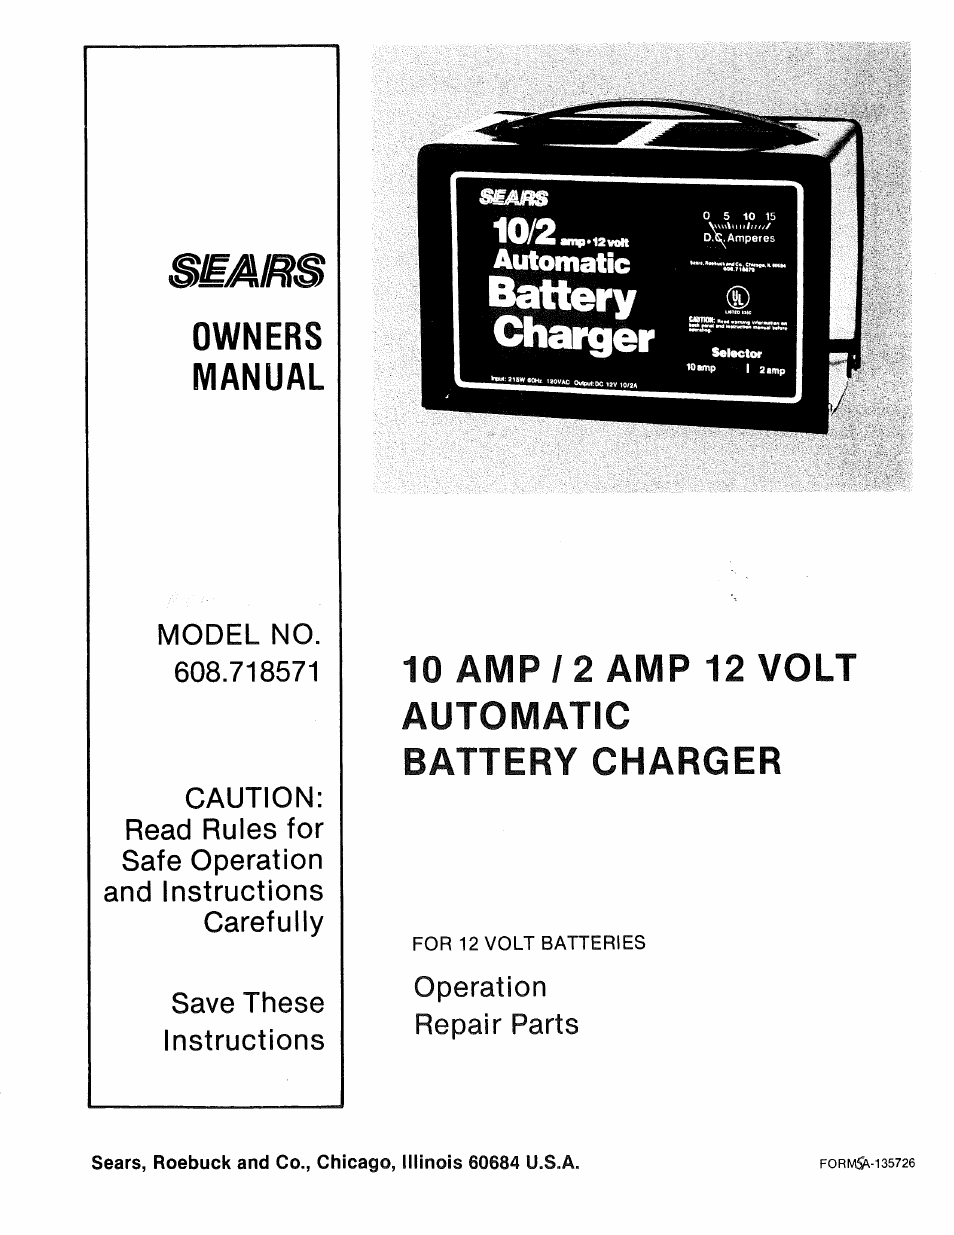 sears 608 718571 user manual 6 pages rh manualsdir com Sears Diehard Batteries for Motorcycle Sears Auto Parts Battery